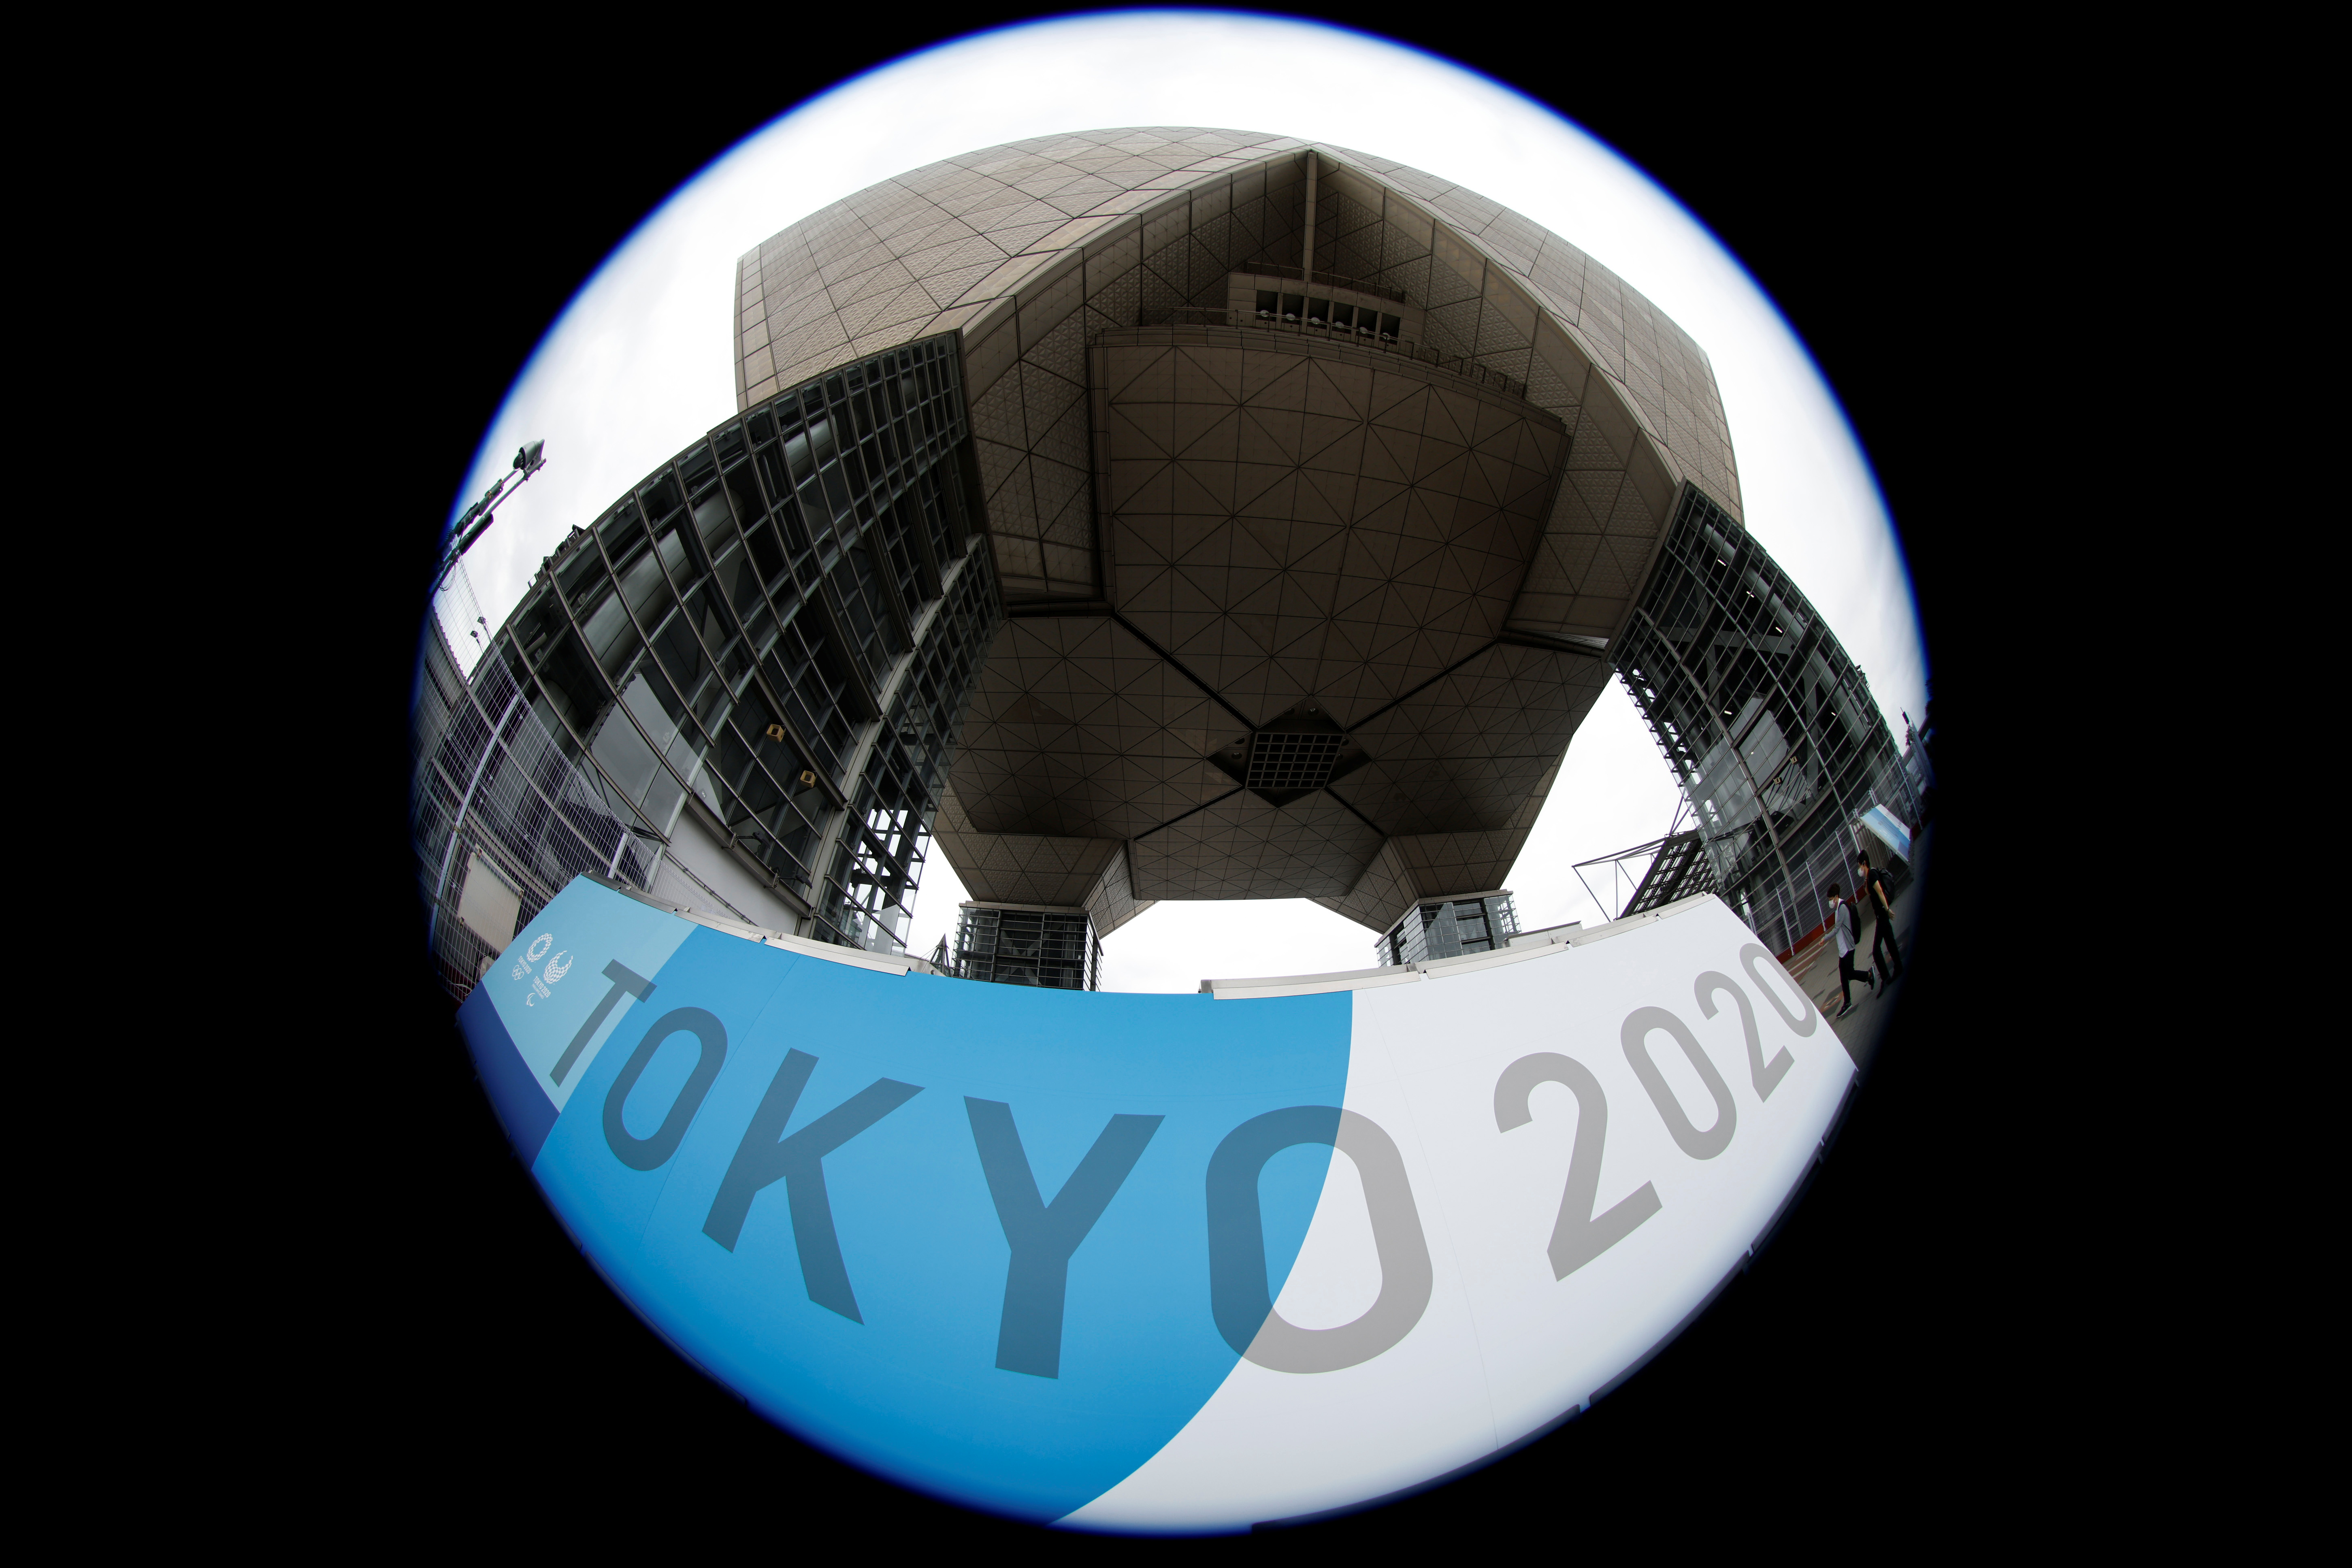 People walk past a sign for the 2020 Tokyo Olympic Games that have been postponed to 2021 due to the coronavirus disease (COVID-19) pandemic, at the IBC/MPC media center at Tokyo Big Sight exhibition center in Tokyo, Japan June 30, 2021.  REUTERS/Fabrizio Bensch